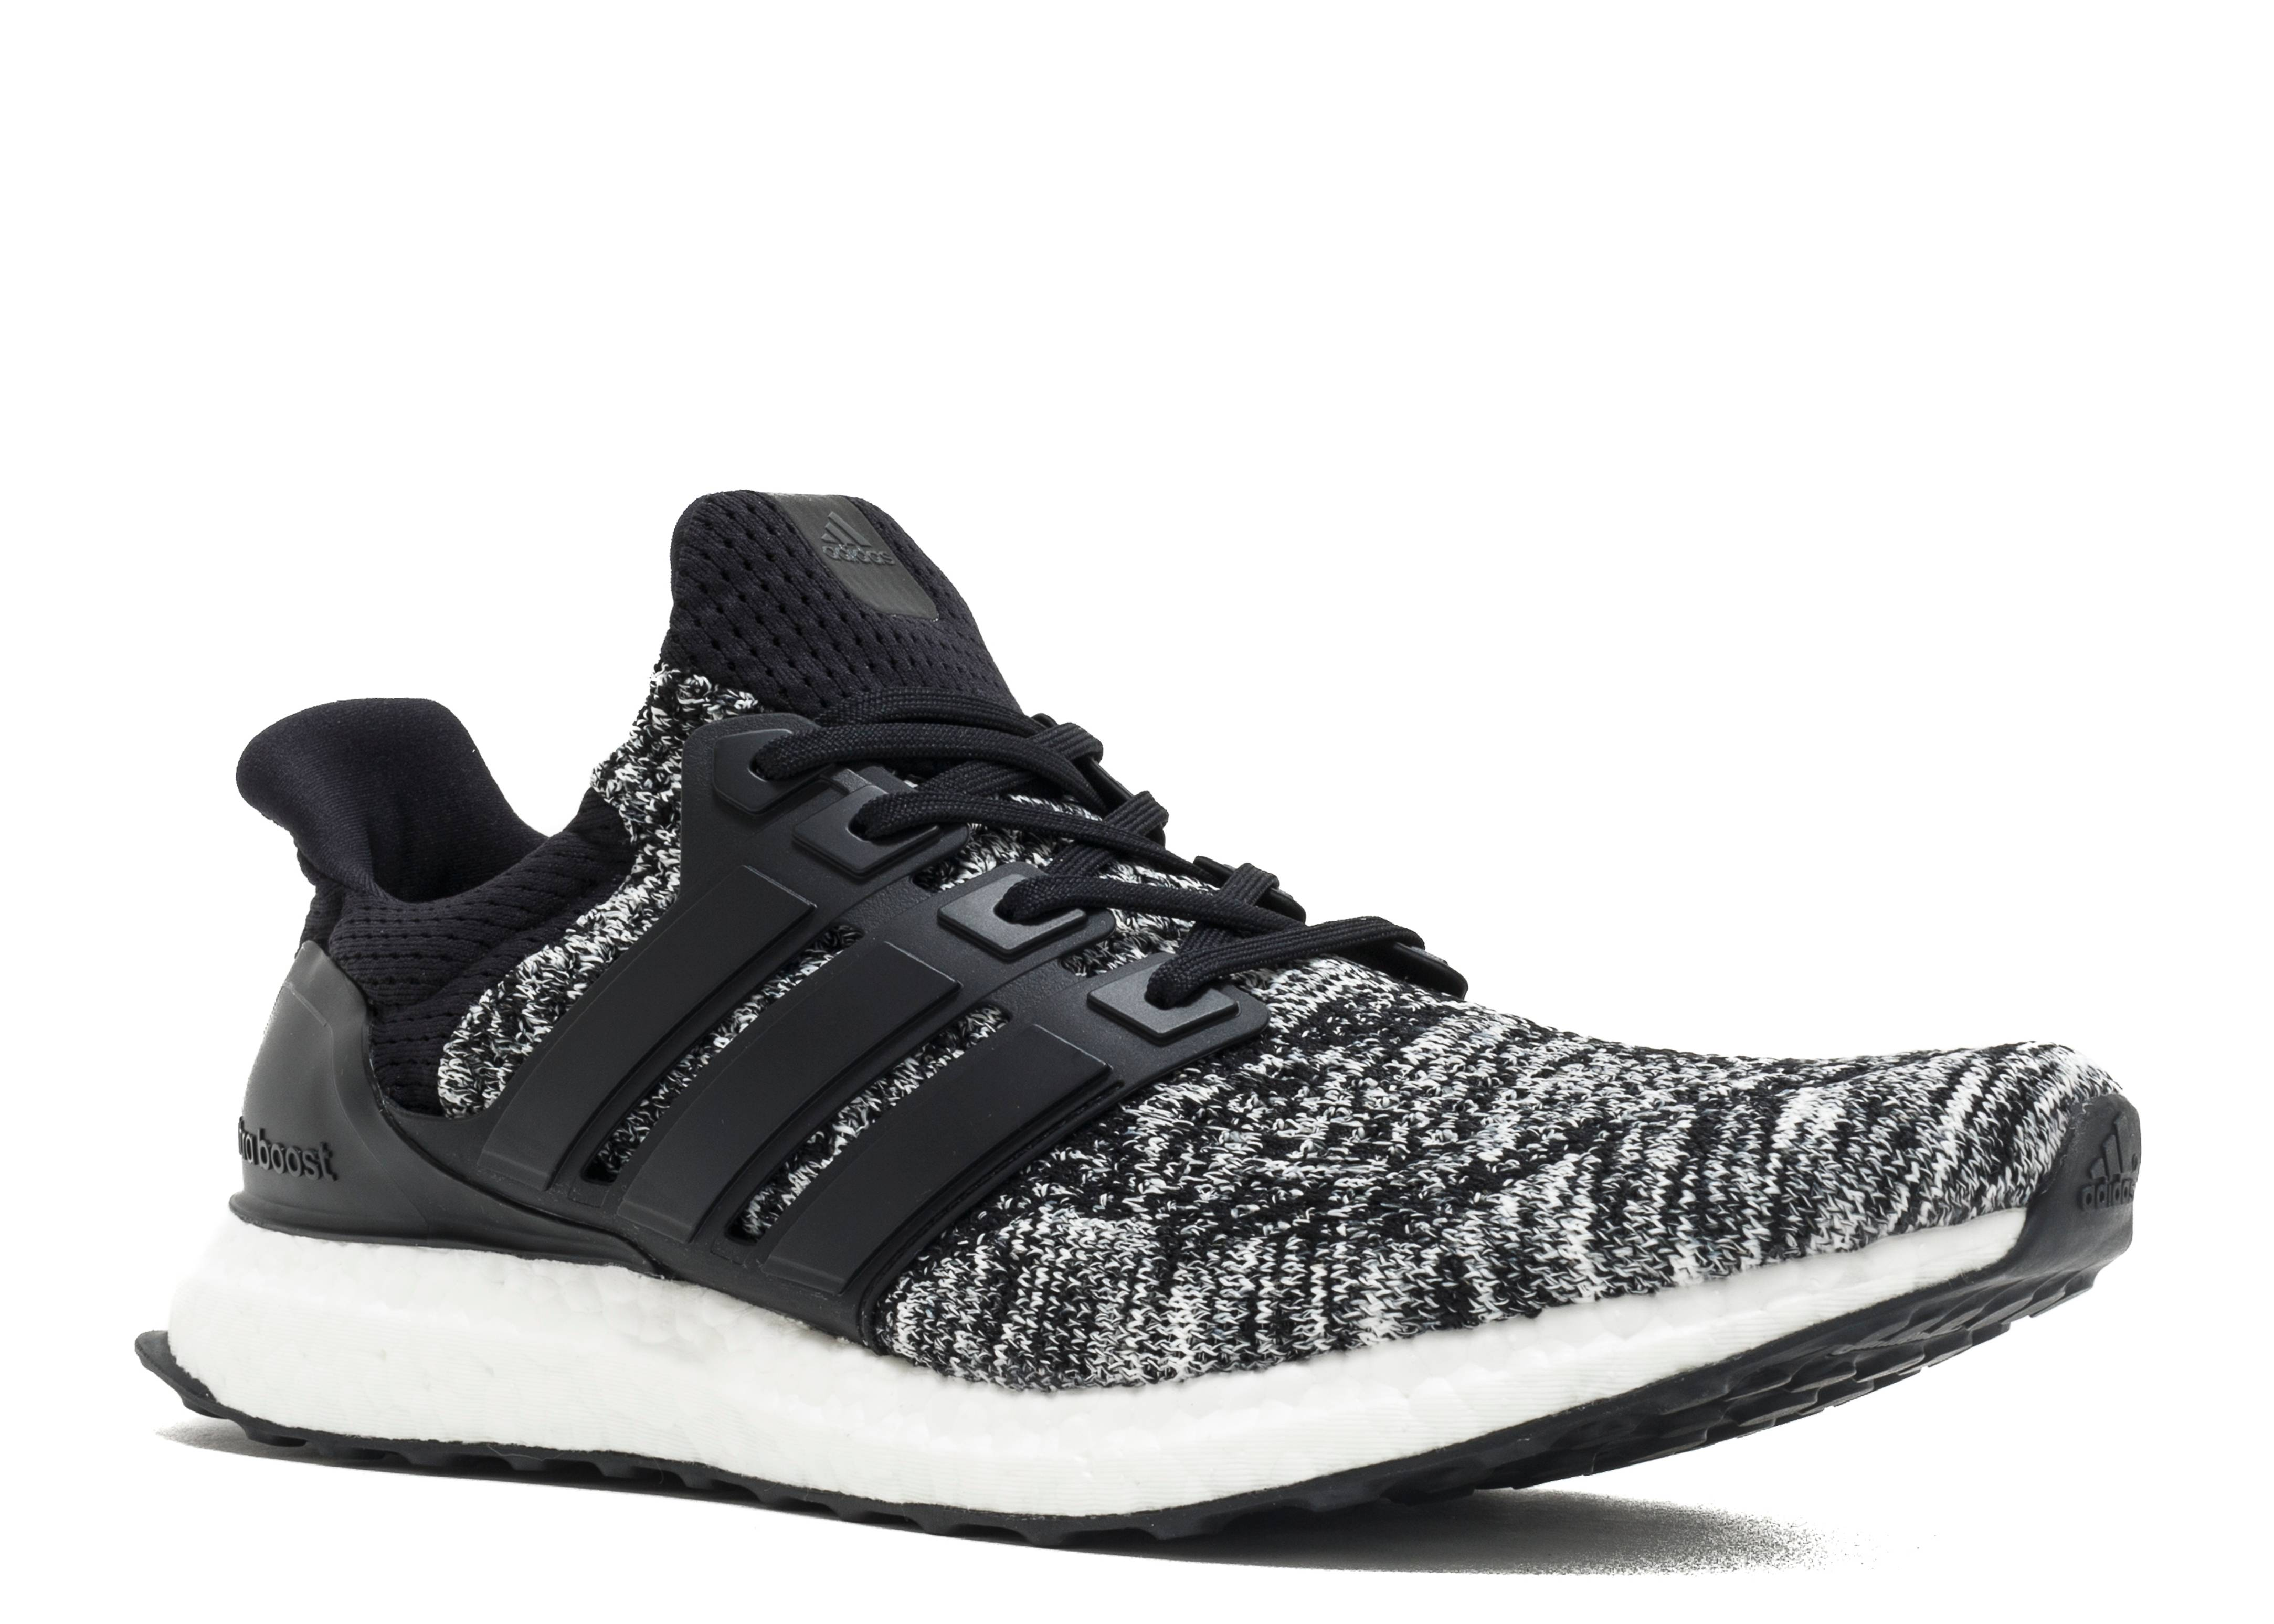 Adidas Ultra Boost Reigning Champ